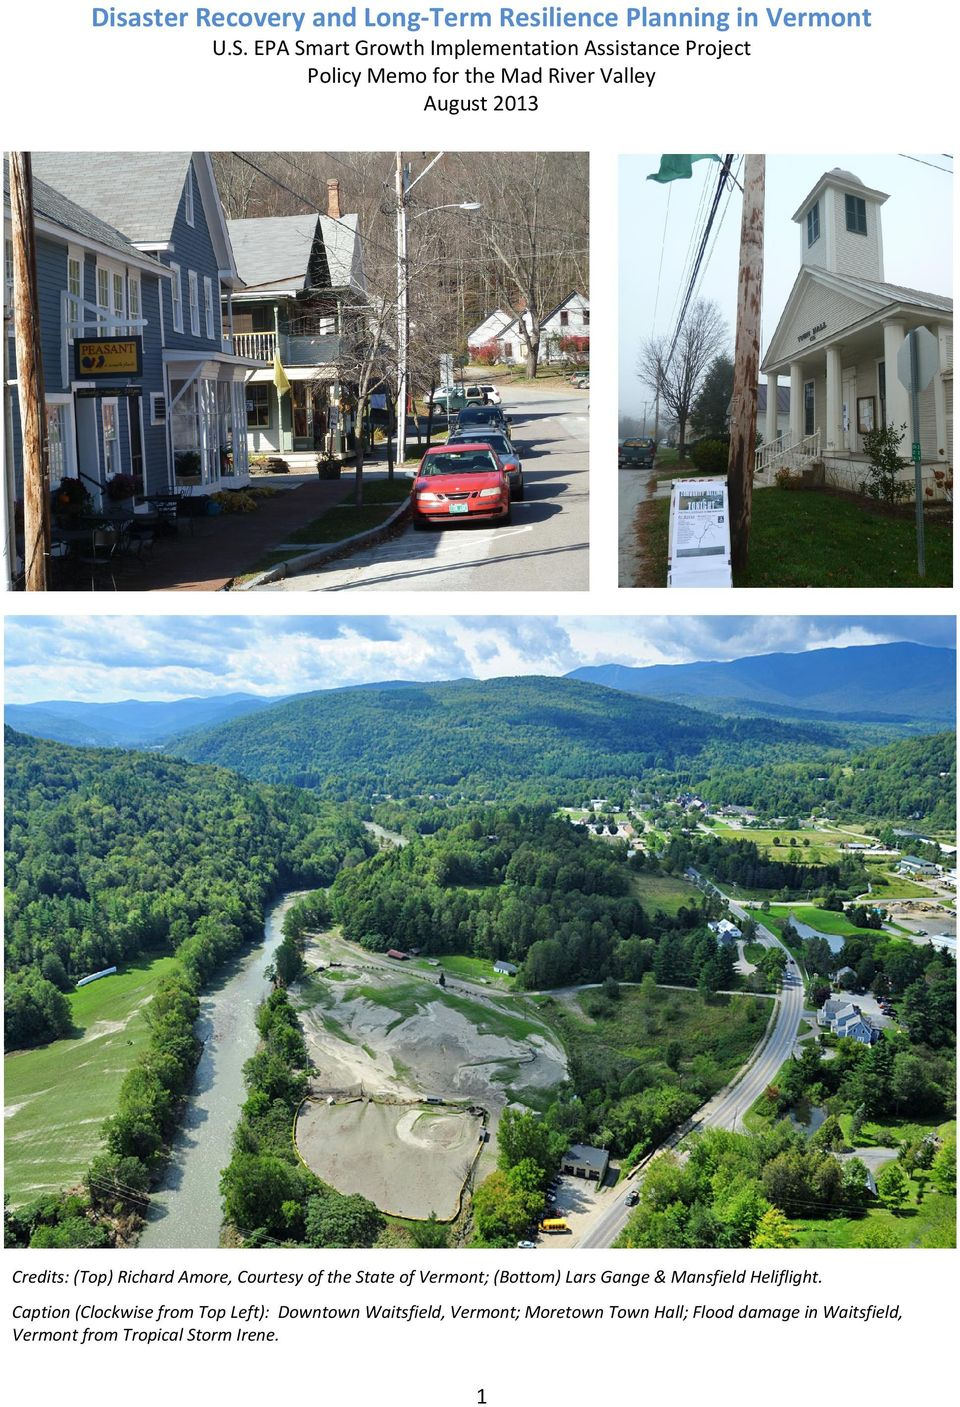 Credits: (Top) Richard Amore, Courtesy of the State of Vermont; (Bottom) Lars Gange & Mansfield Heliflight.